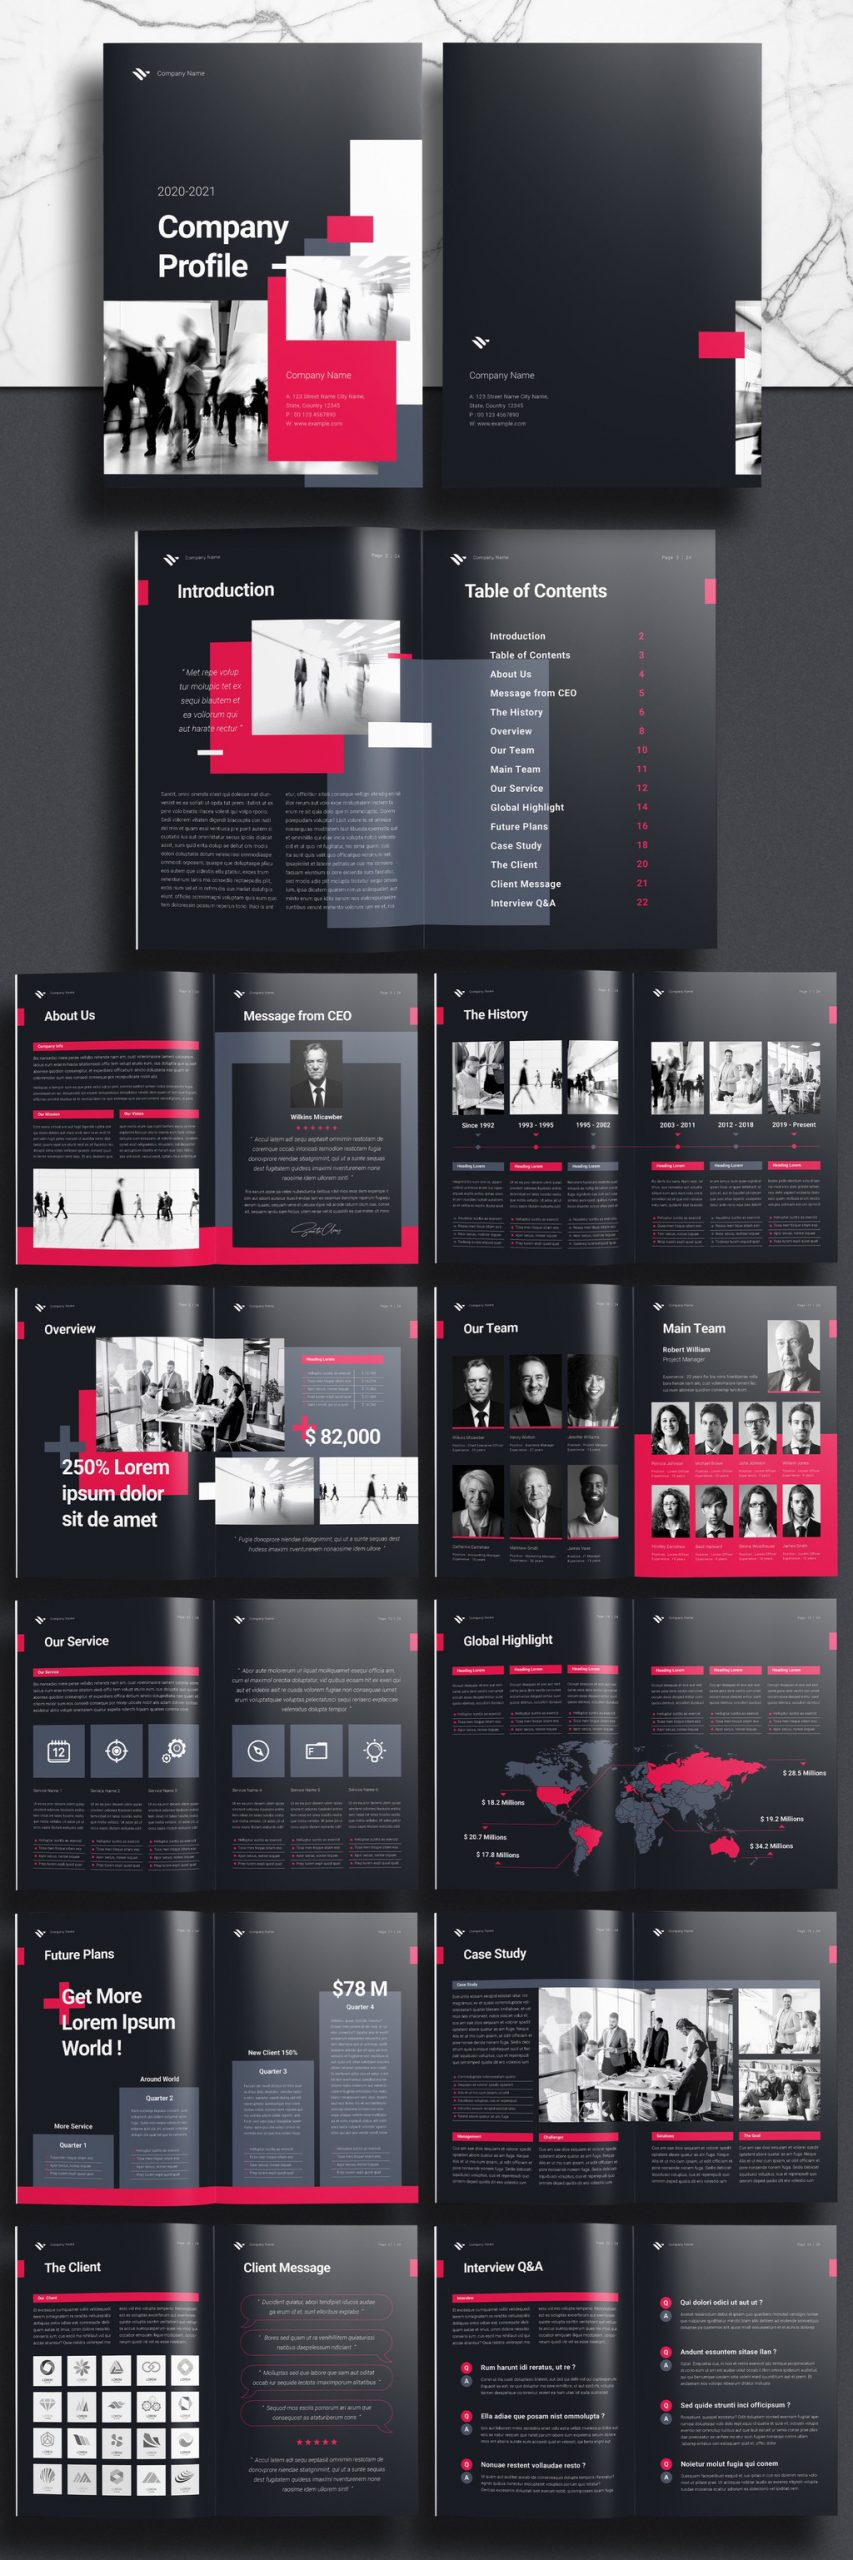 Company Profile Booklet Template for Adobe InDesign with Black and Pink Accents.